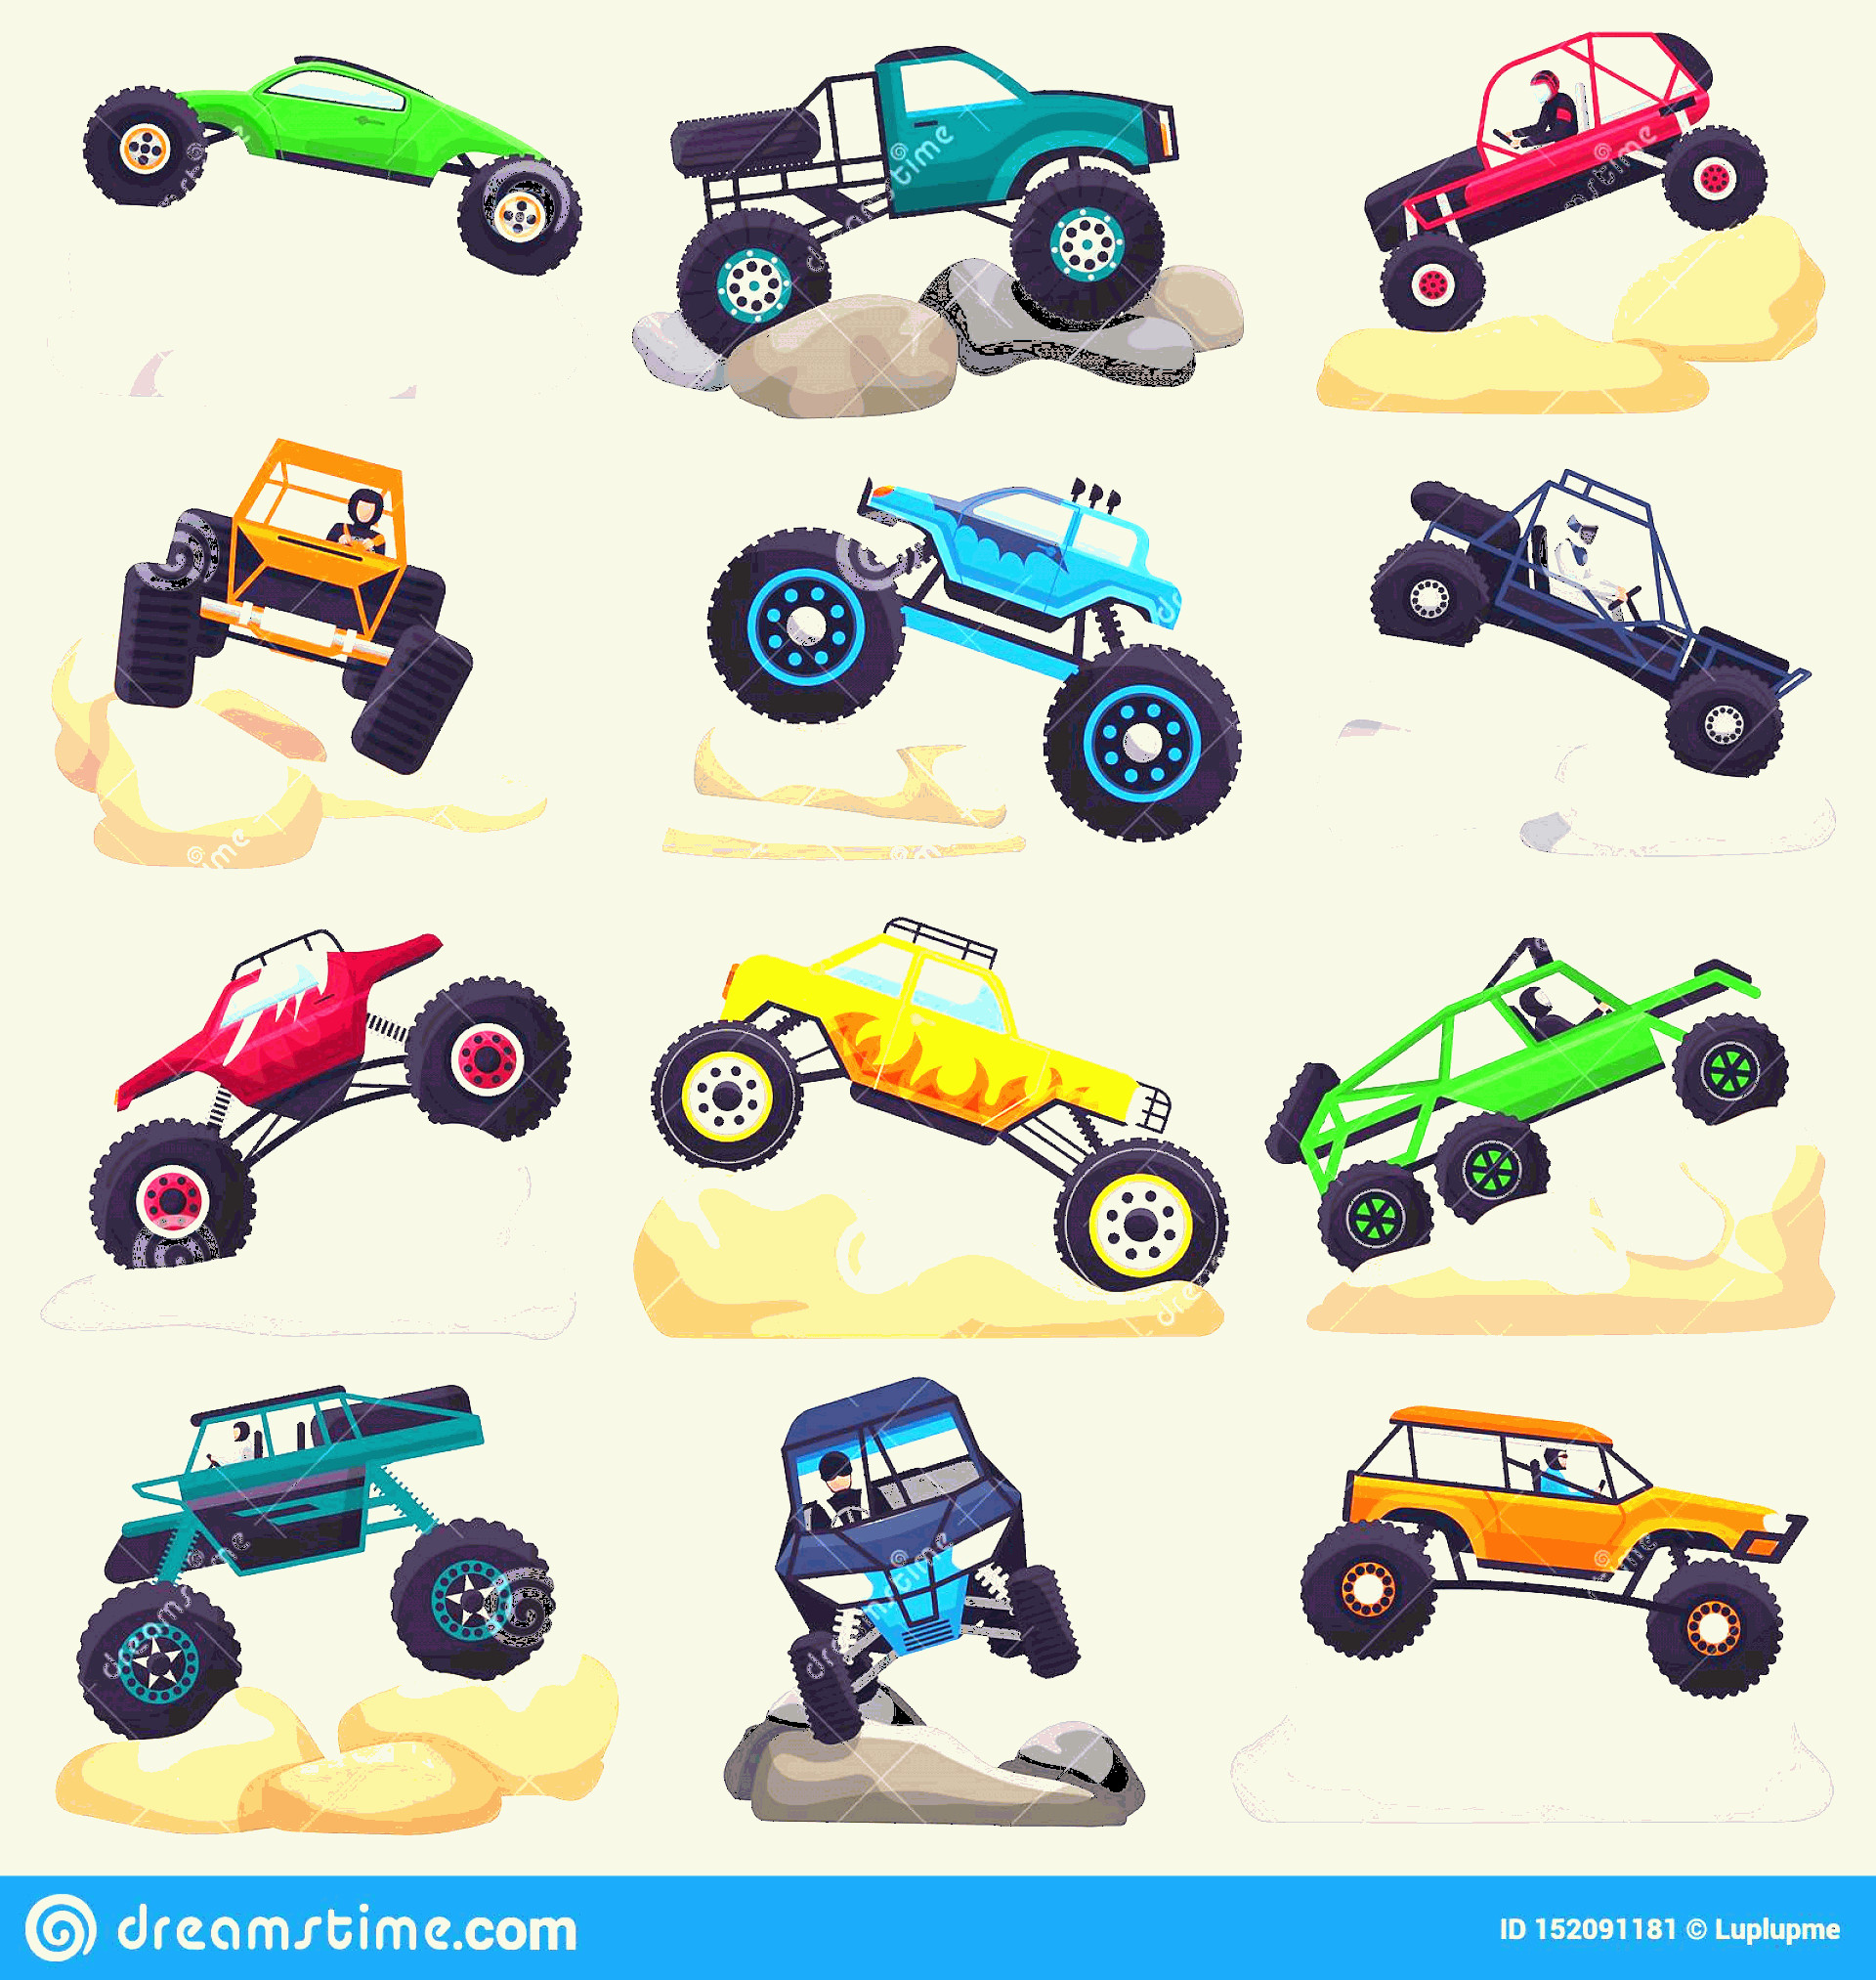 Monster Truck Tires Vector: Monster Truck Vector Cartoon Vehicle Car Extreme Transpor Monster Truck Vector Cartoon Vehicle Car Extreme Transport Image